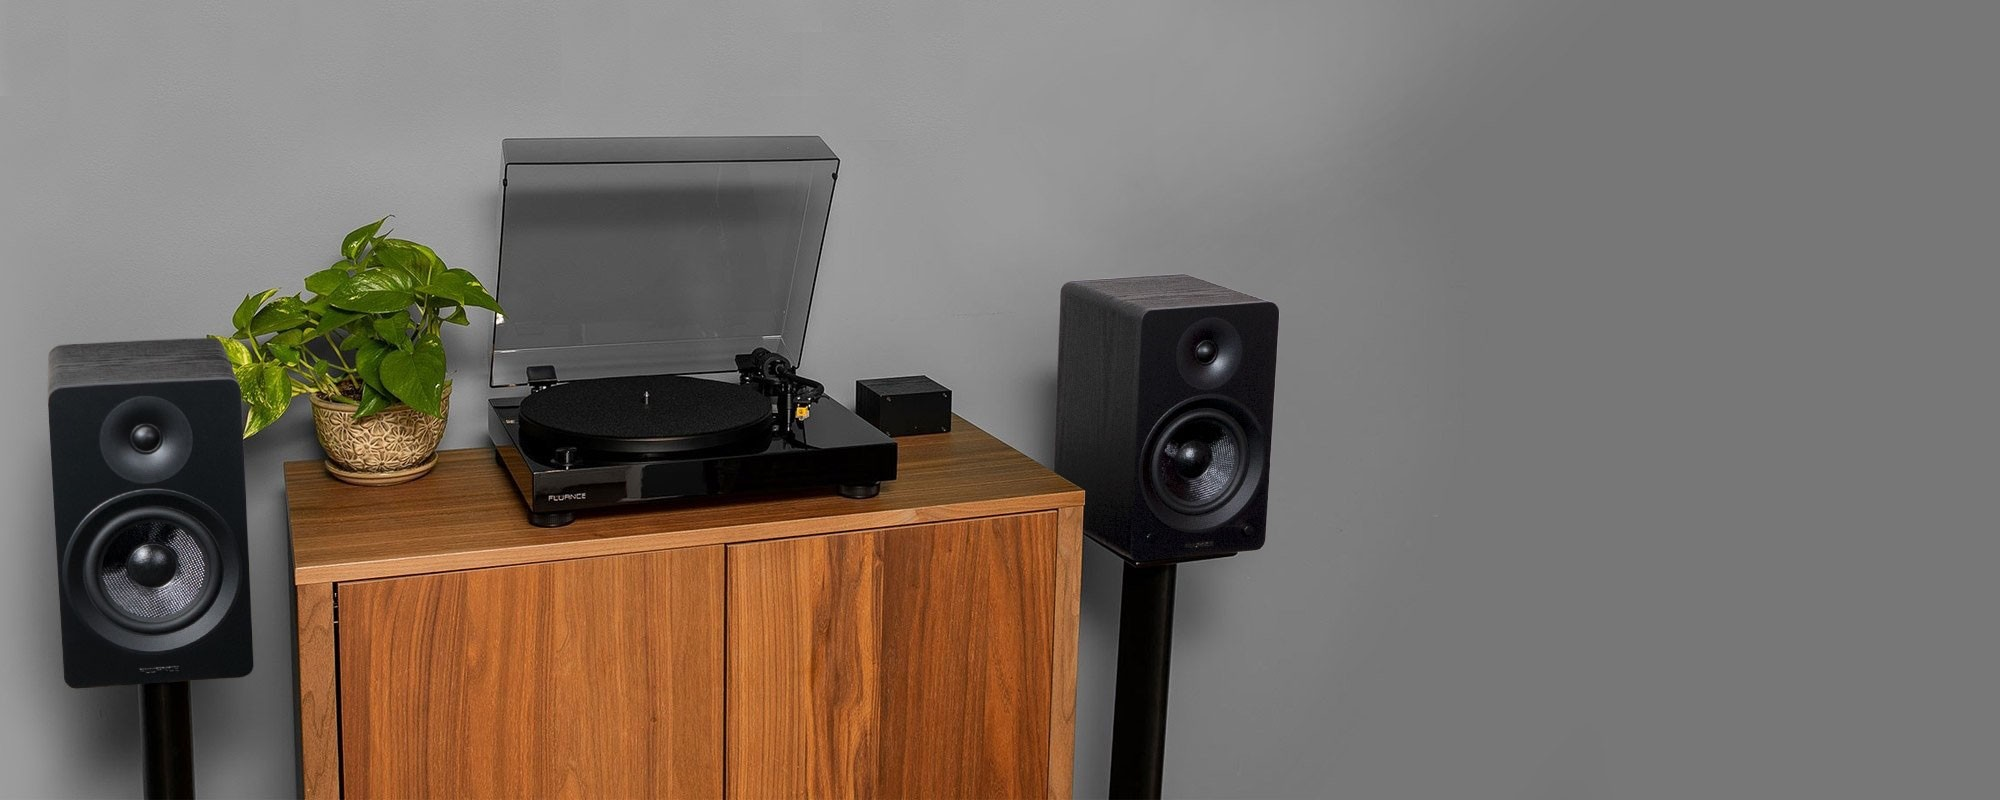 """RT80 Classic High Fidelity Vinyl Turntable with Ai61 Powered 6.5"""" Stereo Bookshelf Speakers - Lifestyle"""